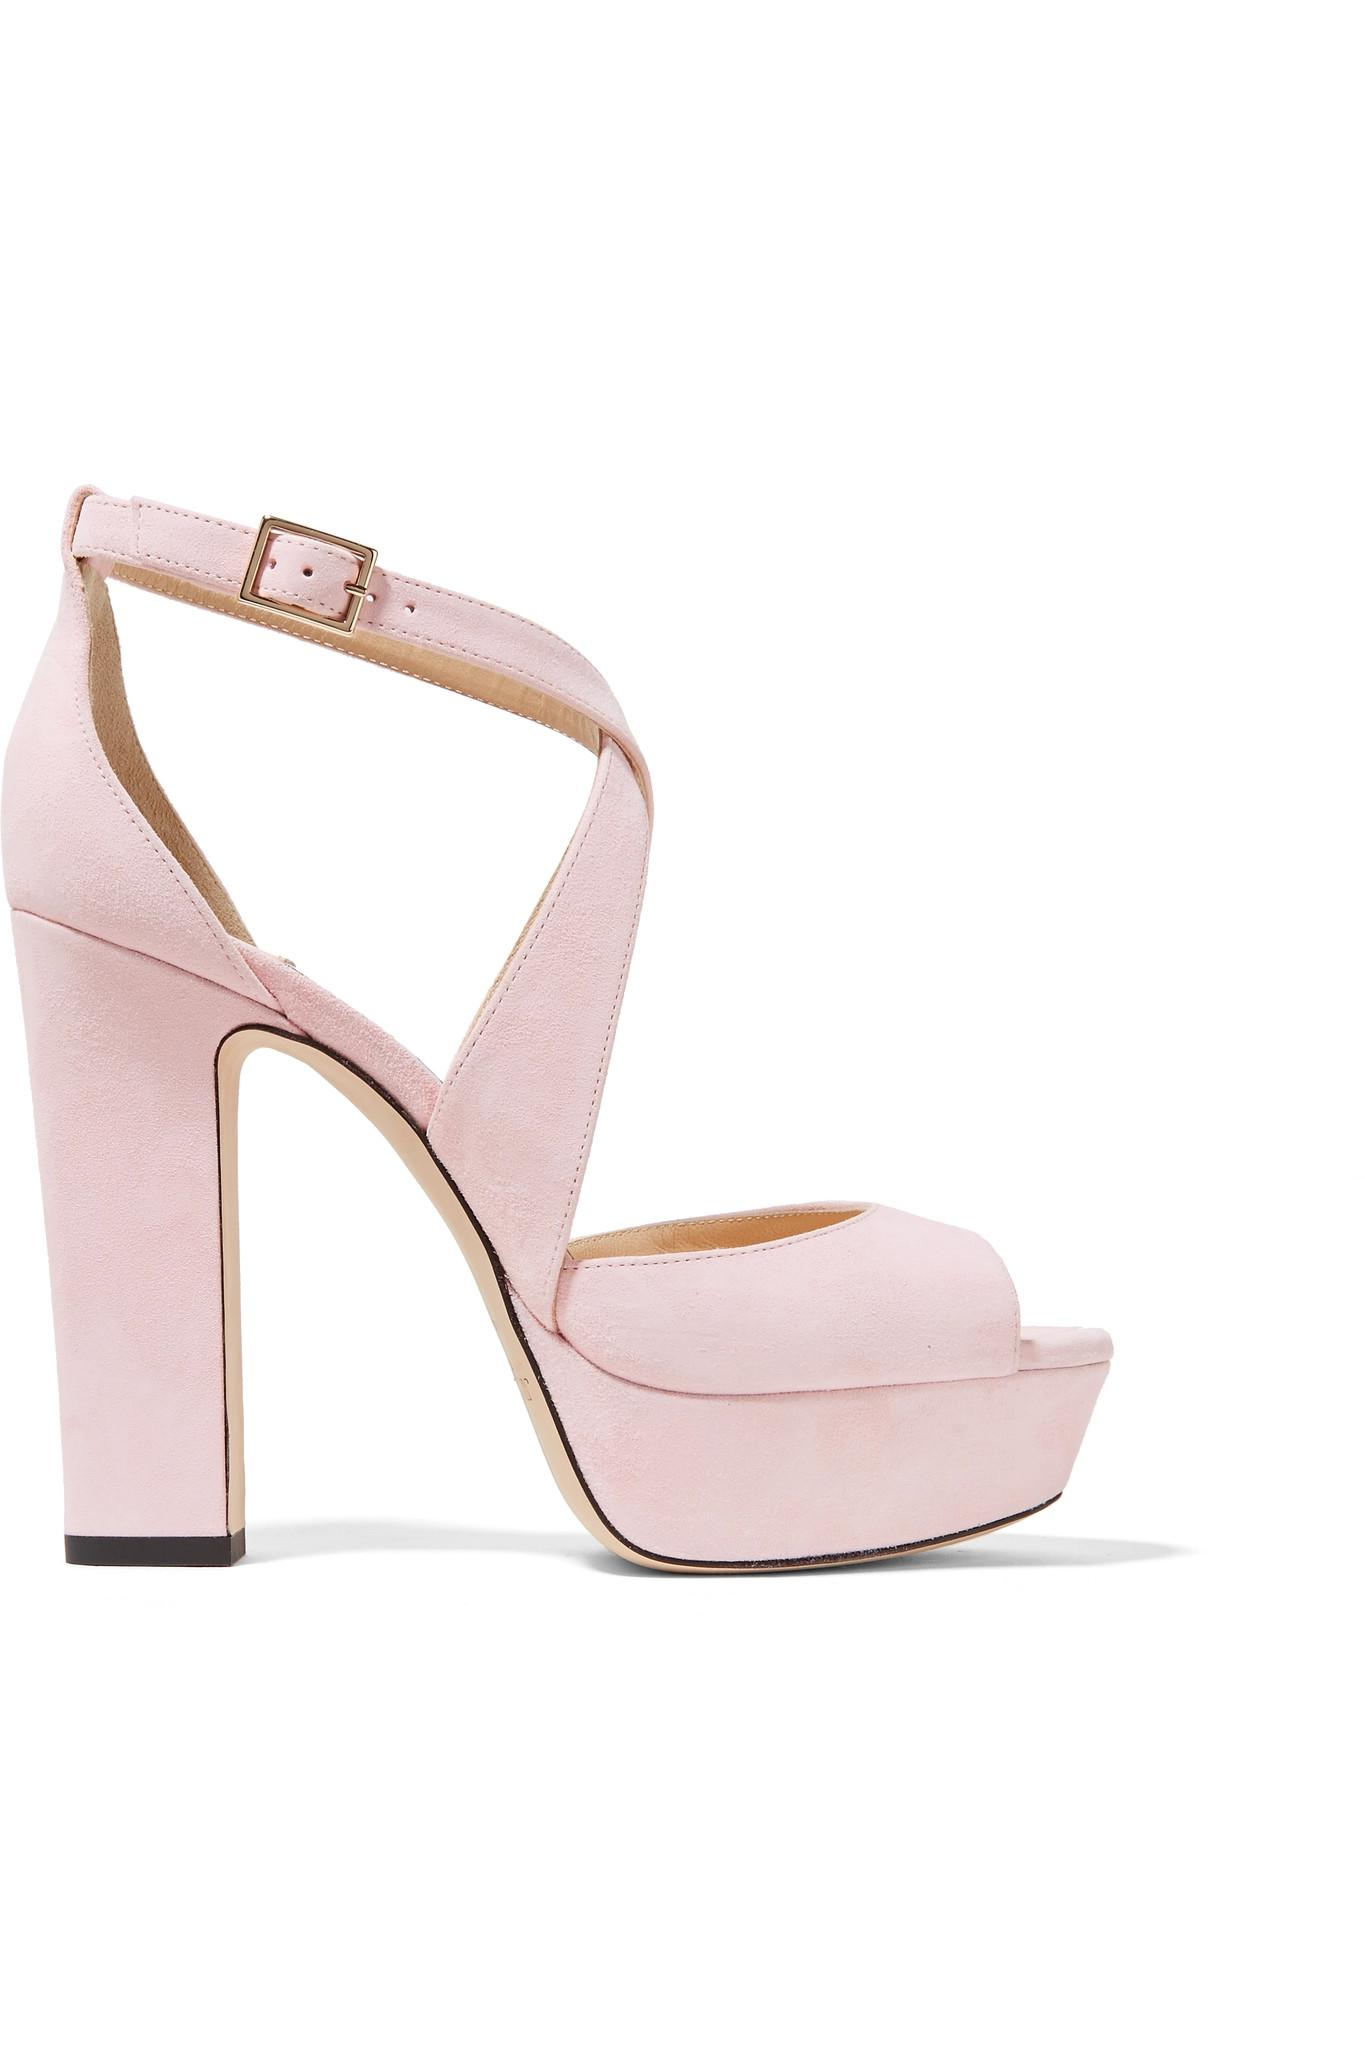 63d8655b39a6 Lyst - Jimmy Choo April 120 Suede Platform Sandals in Pink